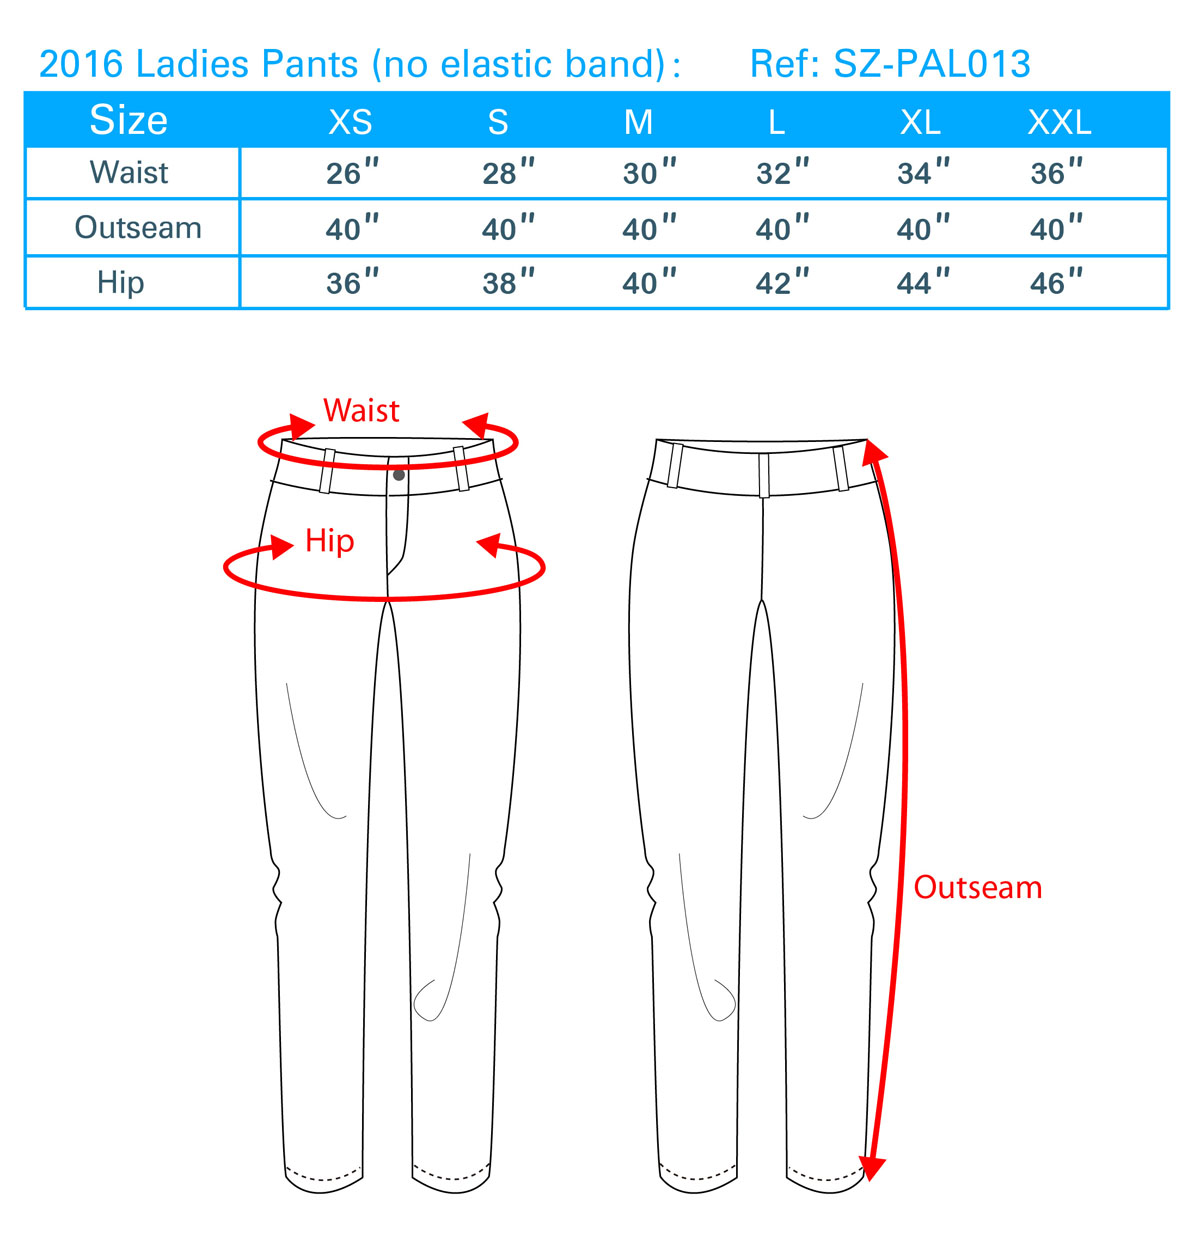 2016 Ladies Pants (no elastic band)